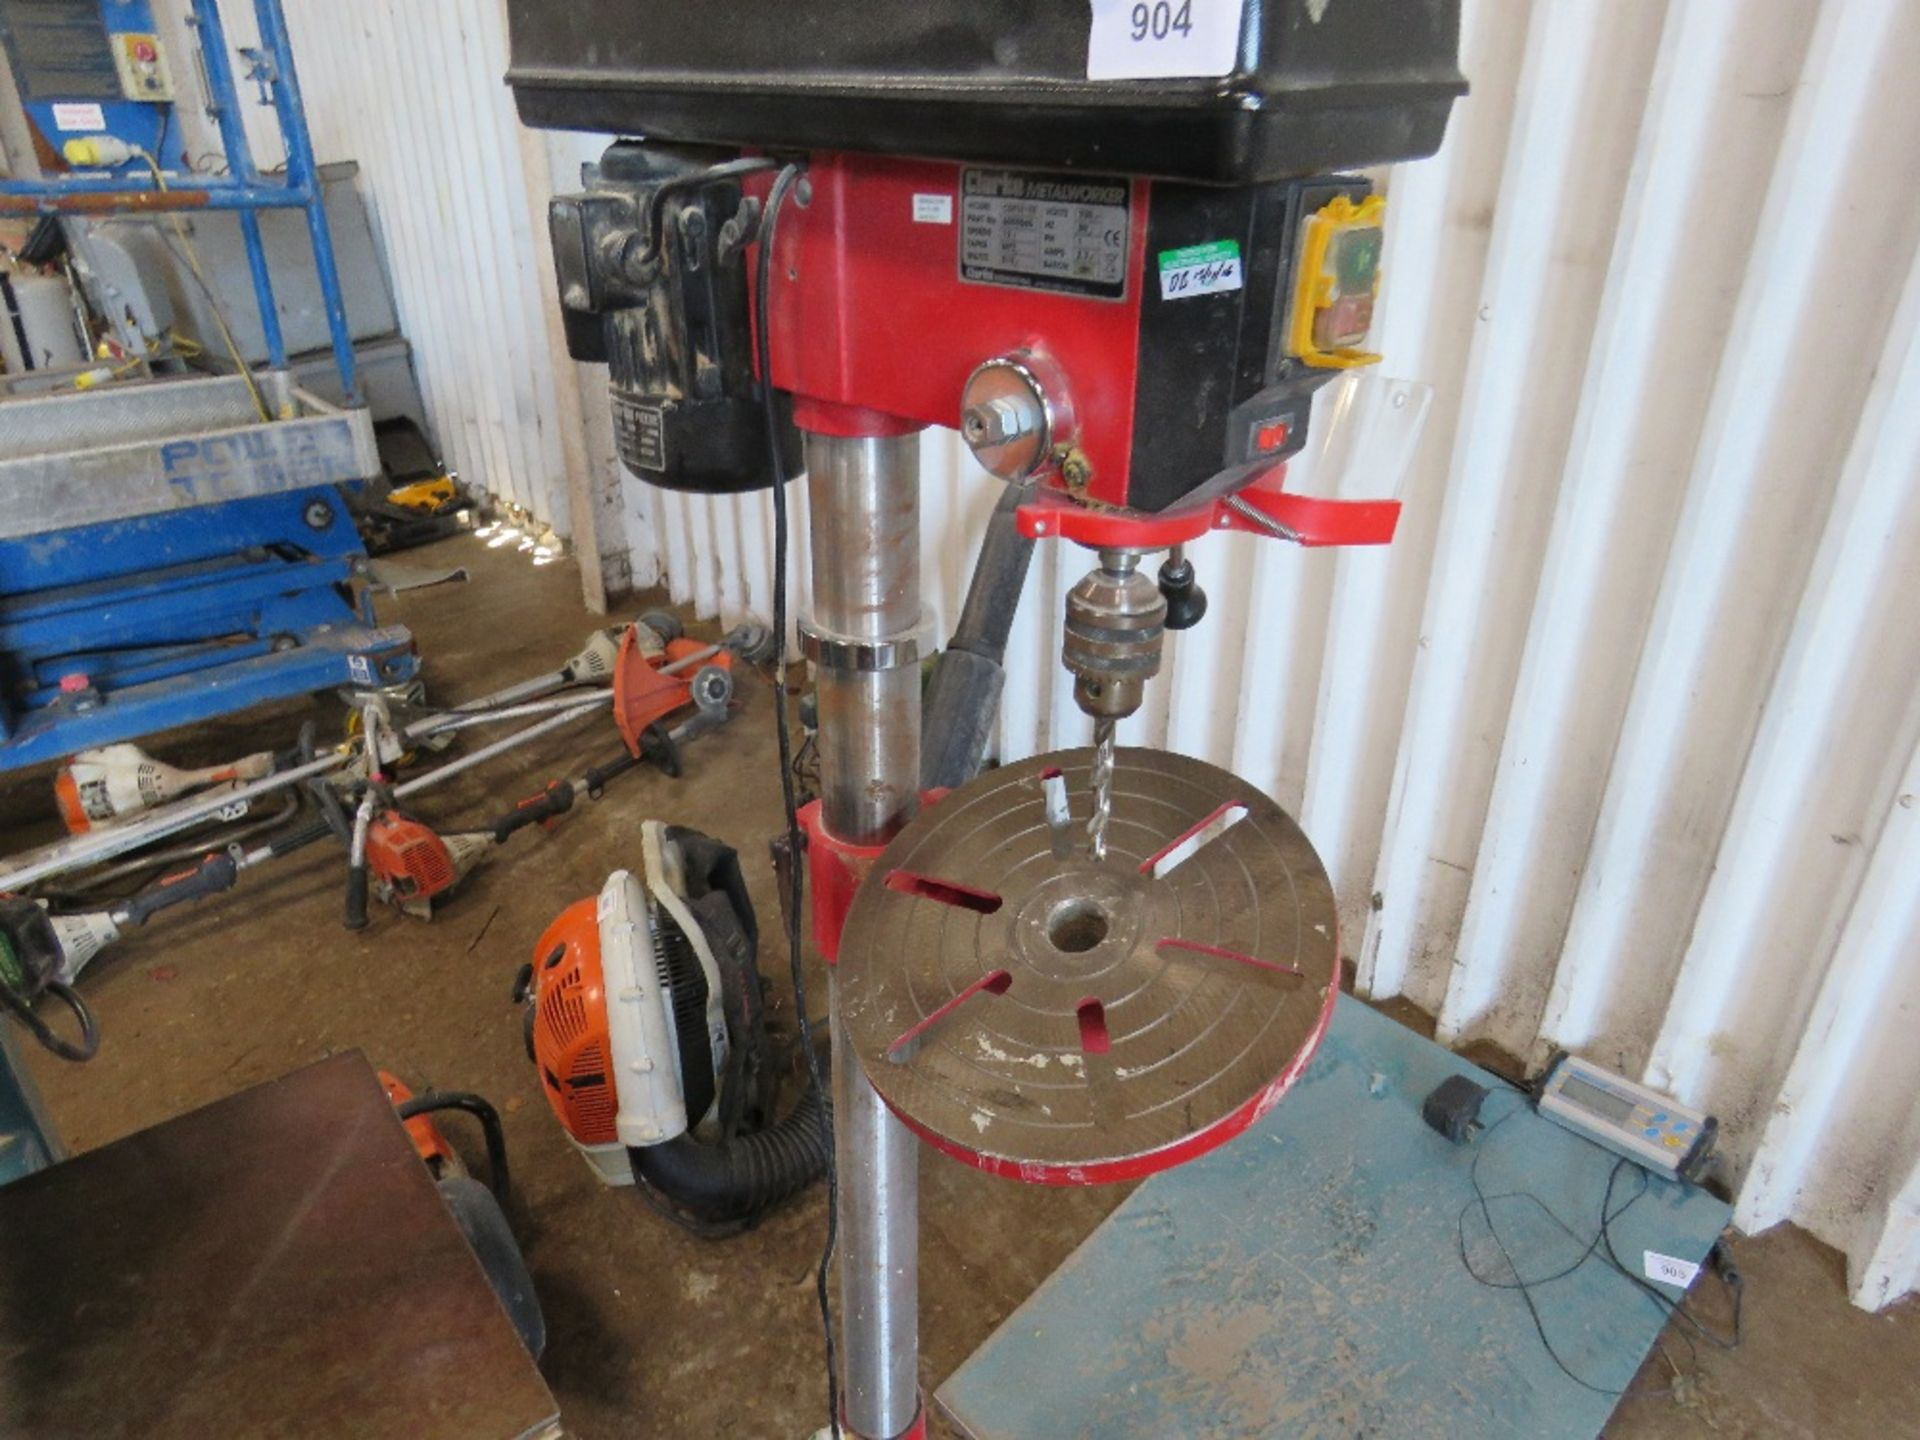 Lot 904 - CLARKE METALWORKER 240VOLT PILLAR DRILL....EX COMPANY LIQUIDATION